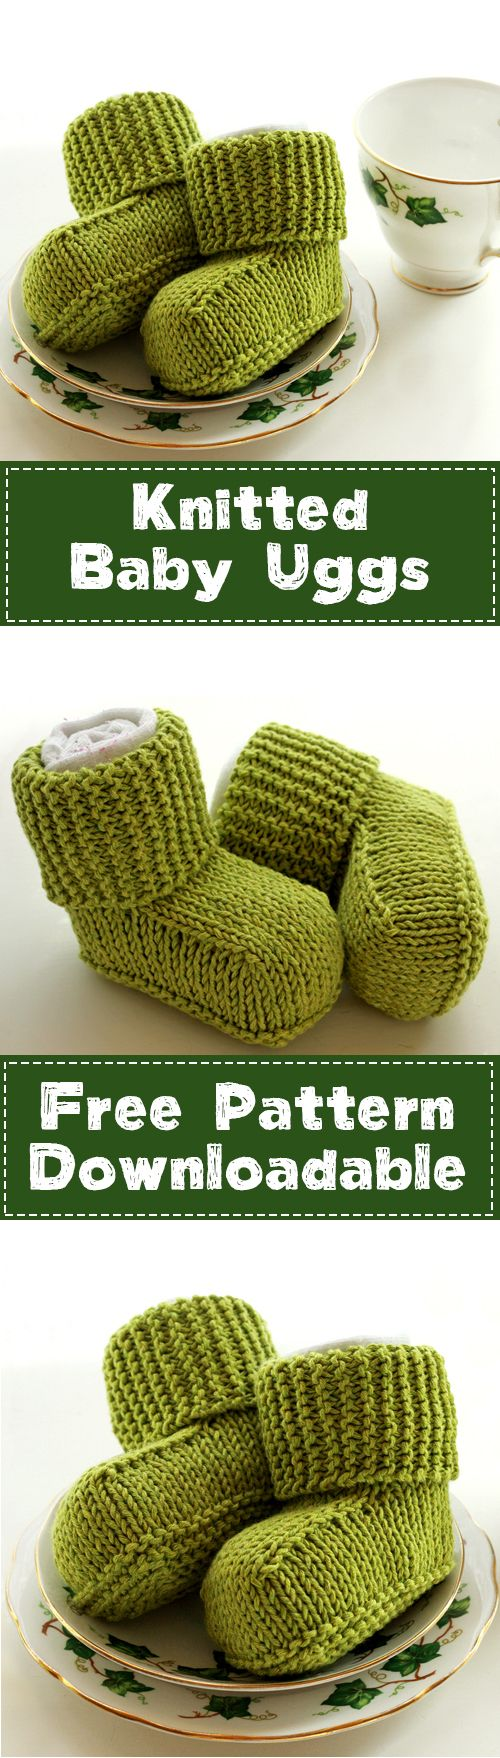 Free Knitting Pattern: Knitted Baby Uggs | Baby uggs, Baby booties ...